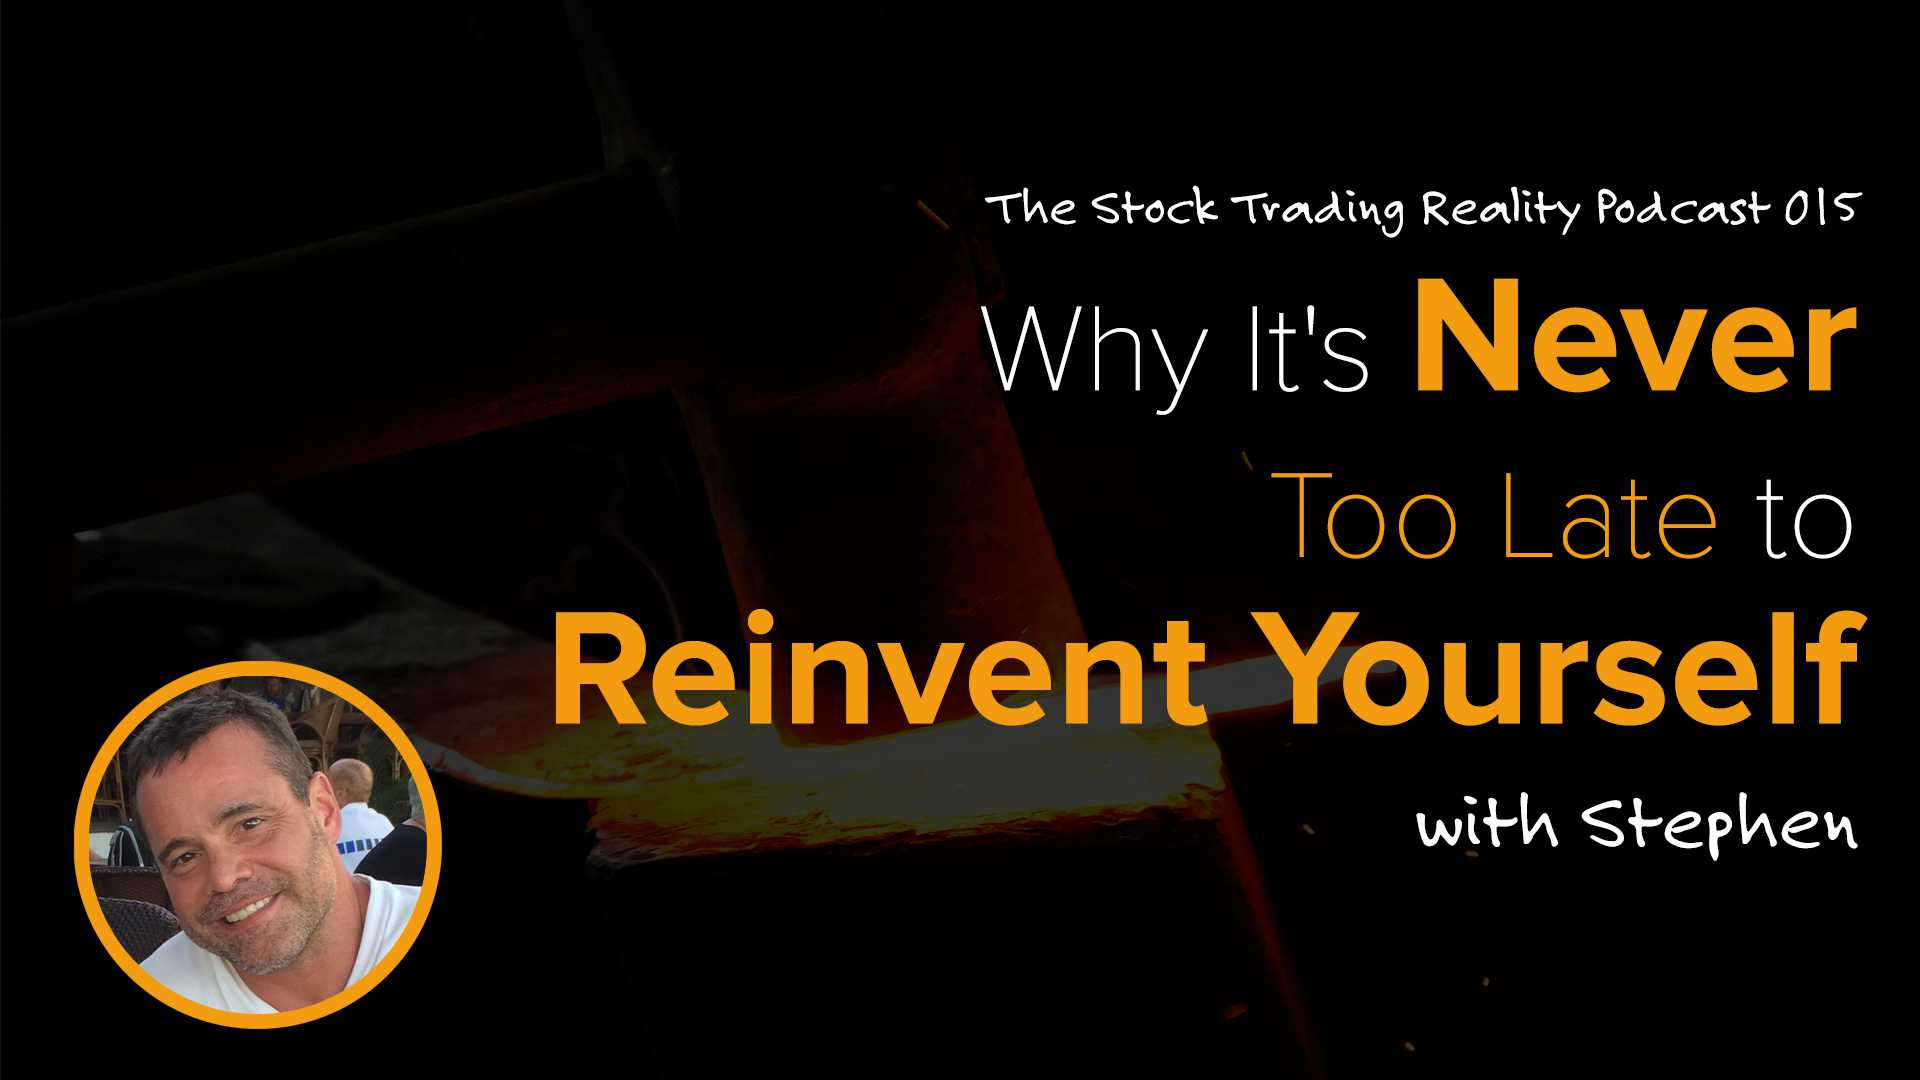 STR 015: Why It's Never Too Late to Reinvent Yourself